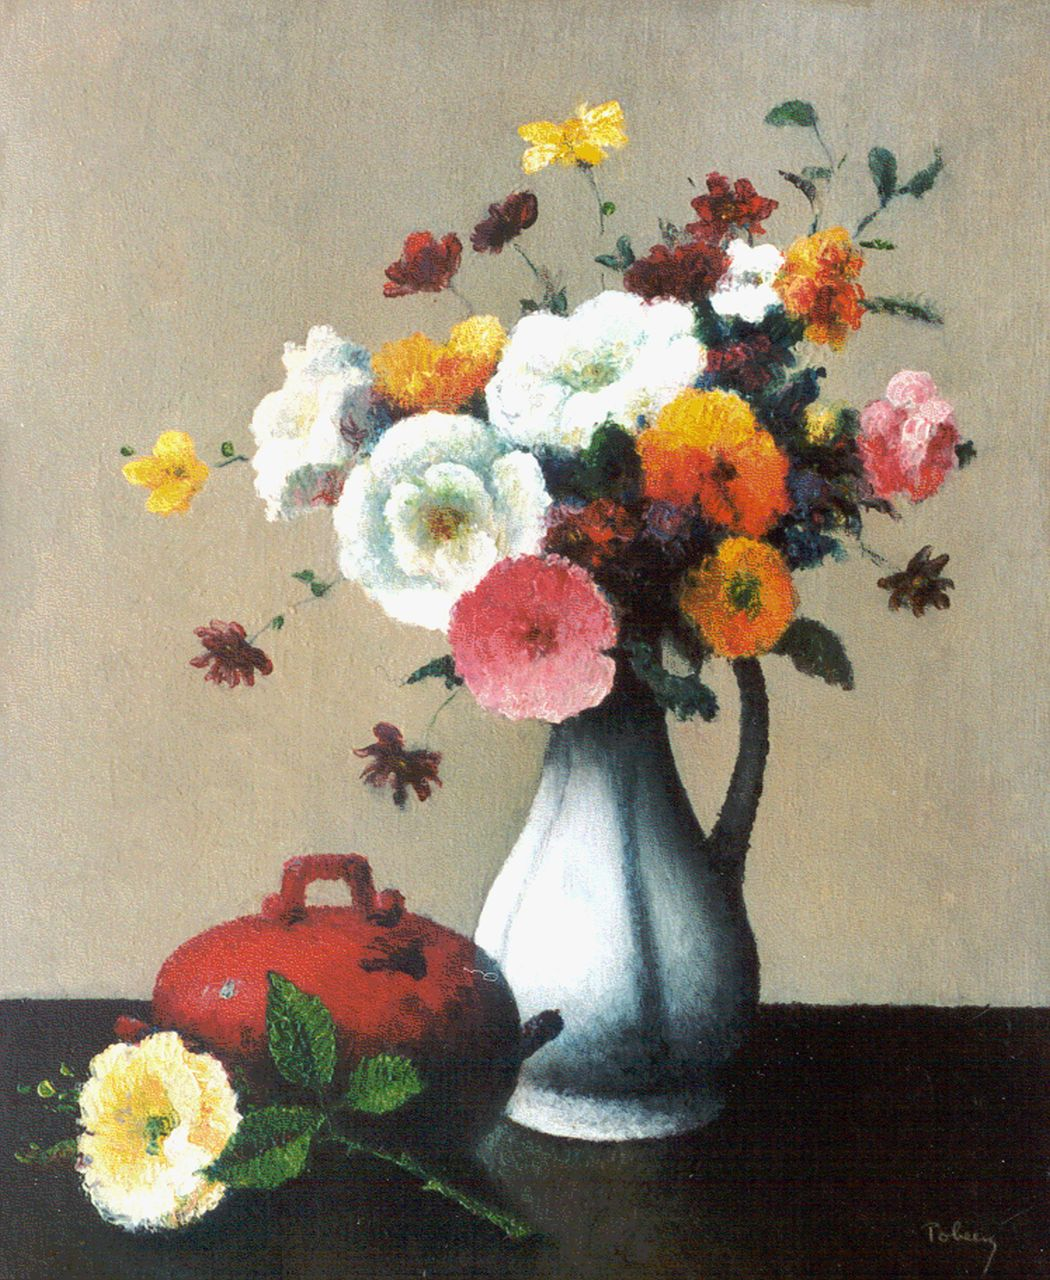 Tobeen F.  | Félix Tobeen, A flower still life, oil on canvas 47.0 x 38.7 cm, signed l.r.